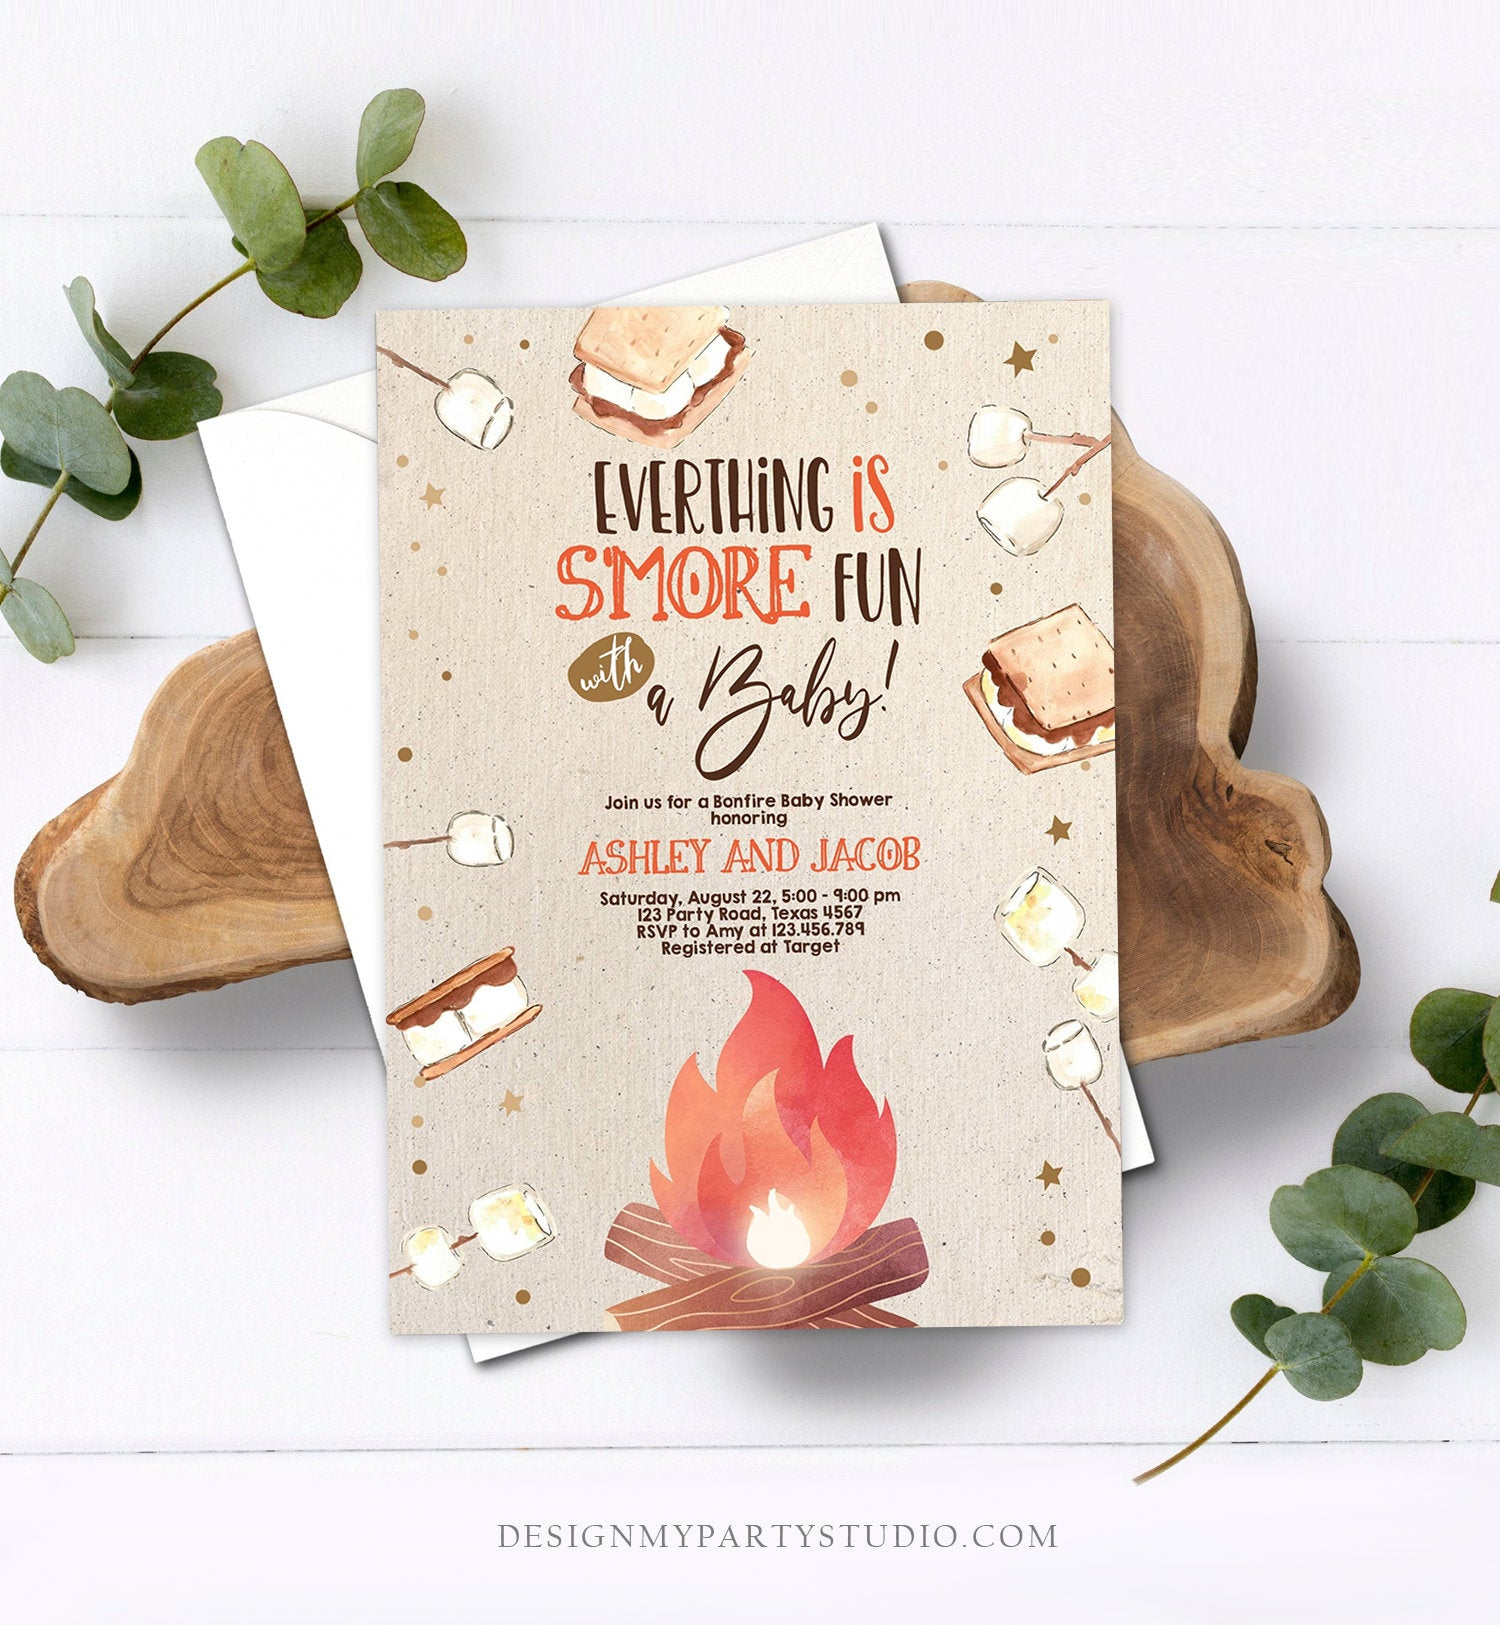 Editable S'more Baby Shower Invitation Bonfire Baby Shower Autumn Couples Shower Invite Fall Smores Neutral Printable Template Corjl 0179